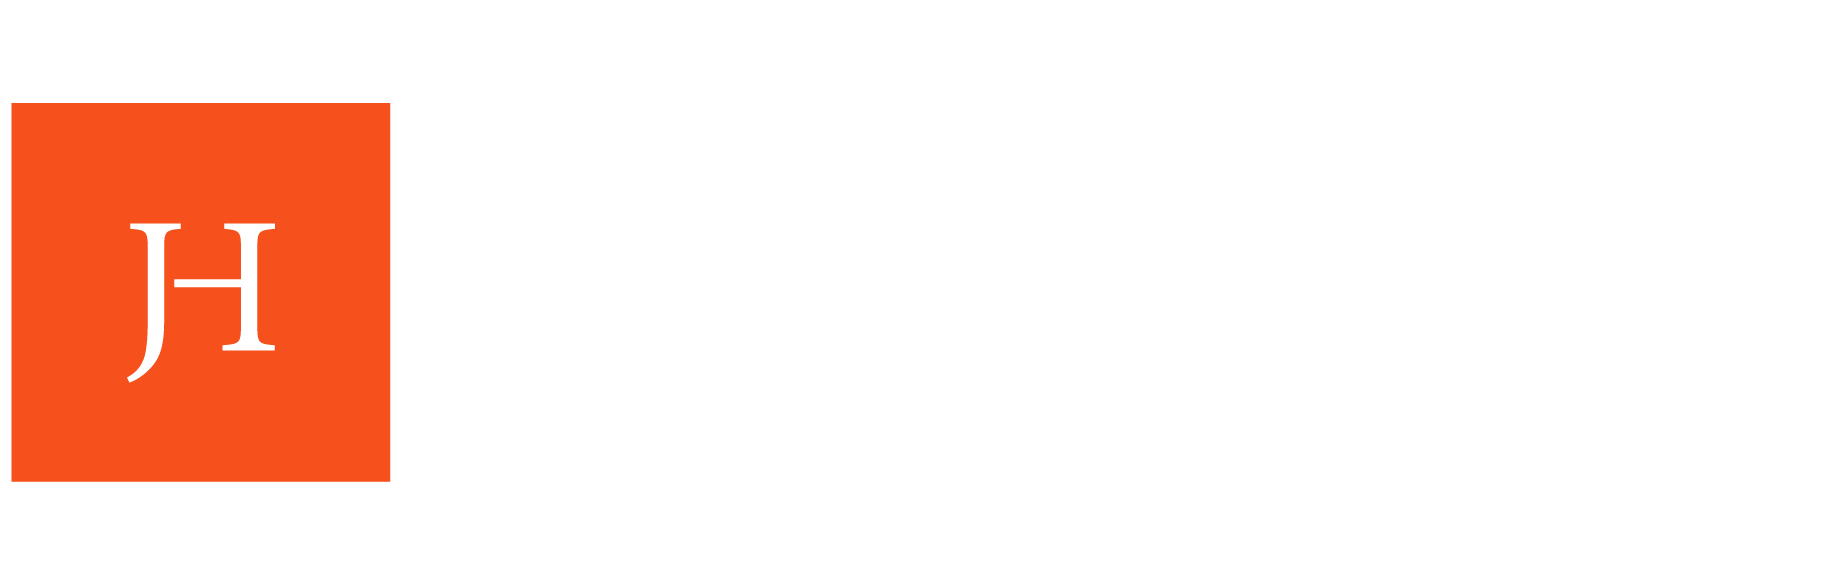 Jim Hitch Memorial Golf Tournament